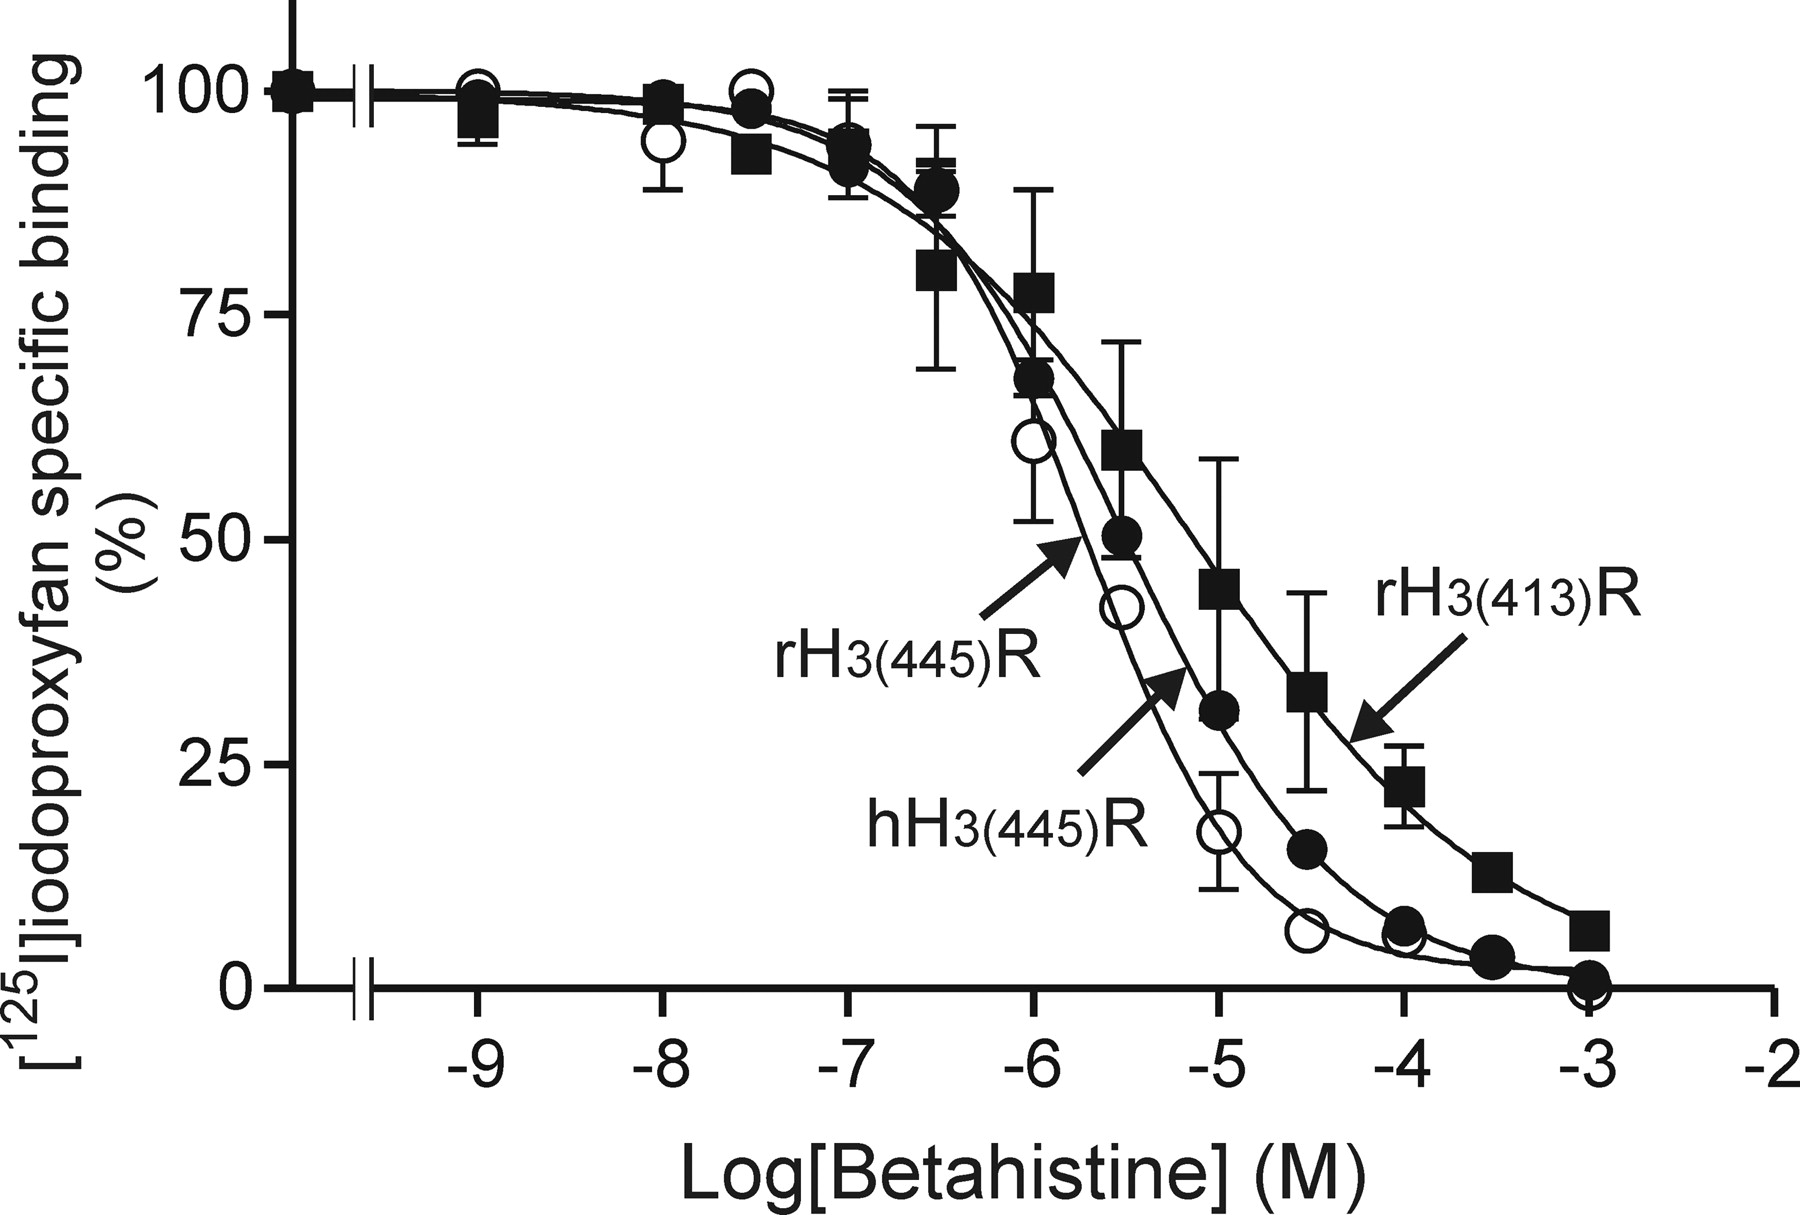 Effects of Betahistine at Histamine H3 Receptors: Mixed Inverse Agonism/Agonism In Vitro and Partial Inverse Agonism In VivoEffects of Betahistine at Histamine H3 Receptors: Mixed Inverse Agonism/Agonism In Vitro and Partial Inverse Agonism In VivoEffects of Betahistine at Histamine H3 Receptors: Mixed Inverse Agonism/Agonism In Vitro and Partial Inverse Agonism In Vivo